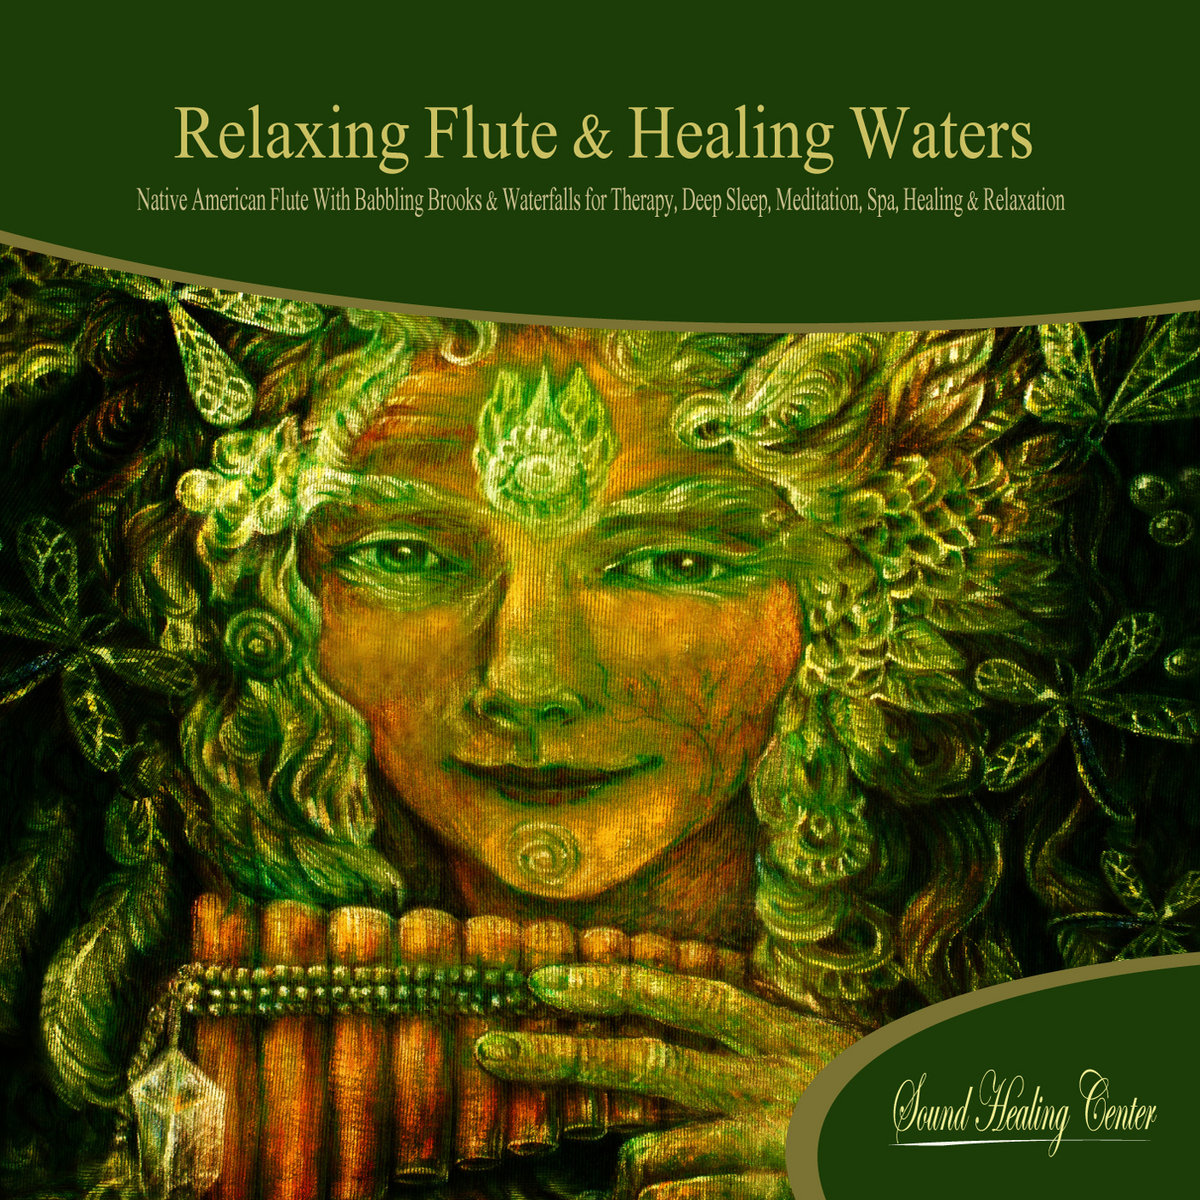 Relaxing Flute & Healing Waters (Native American Flute with Babbling